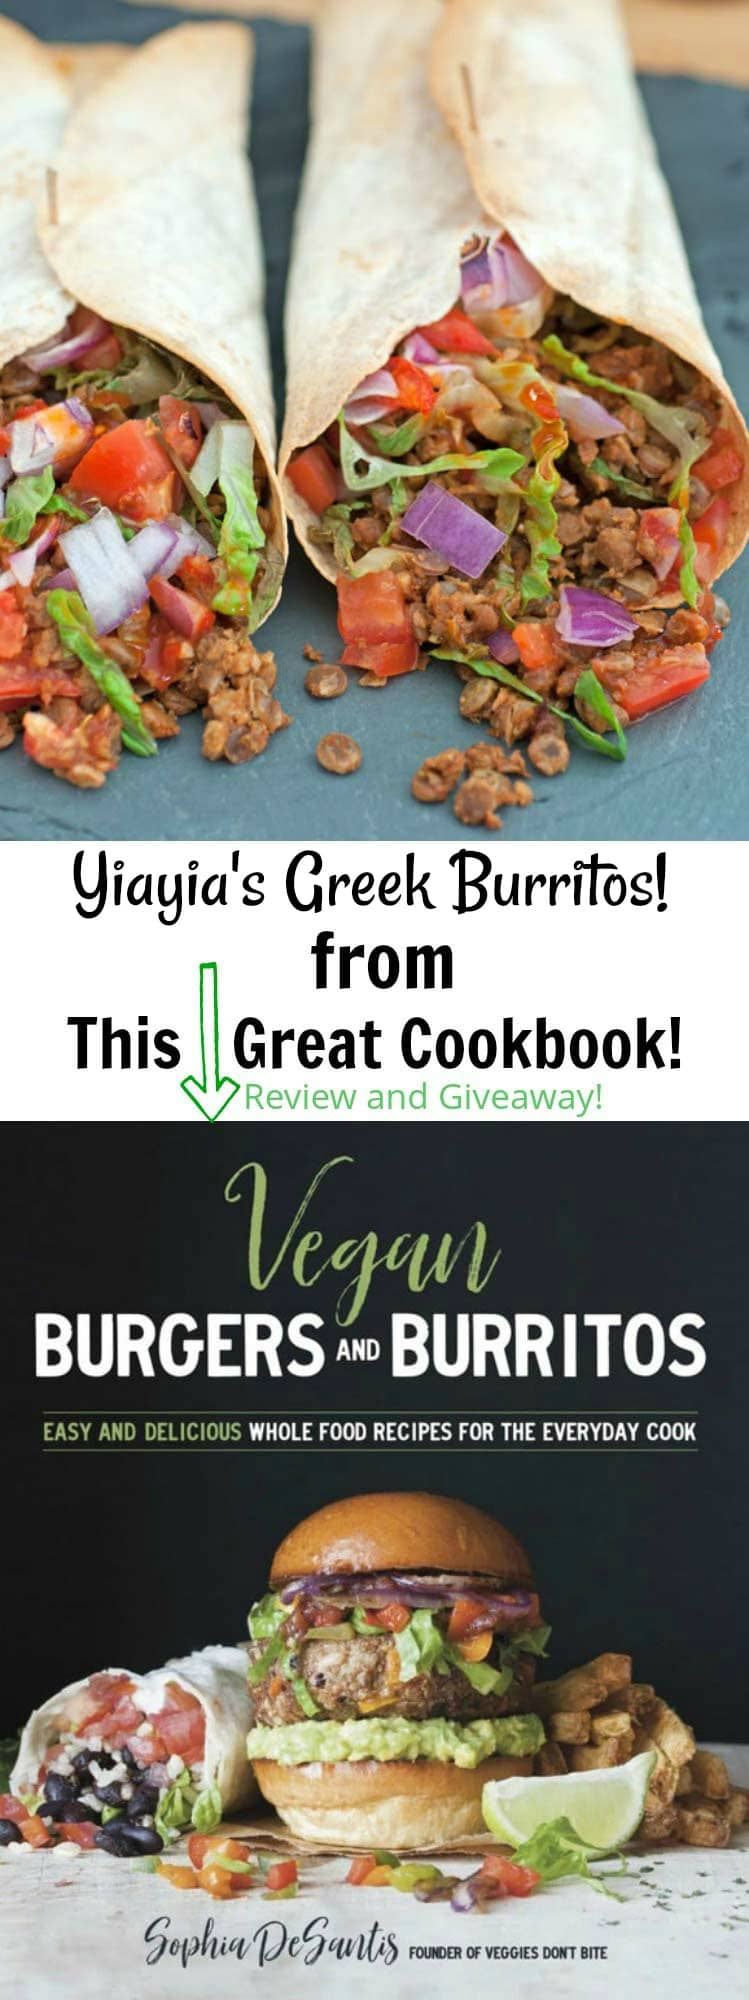 Yiayia's Greek Burritos from Vegan Burgers and Burritos Cookbook! Plus a book review and giveaway!